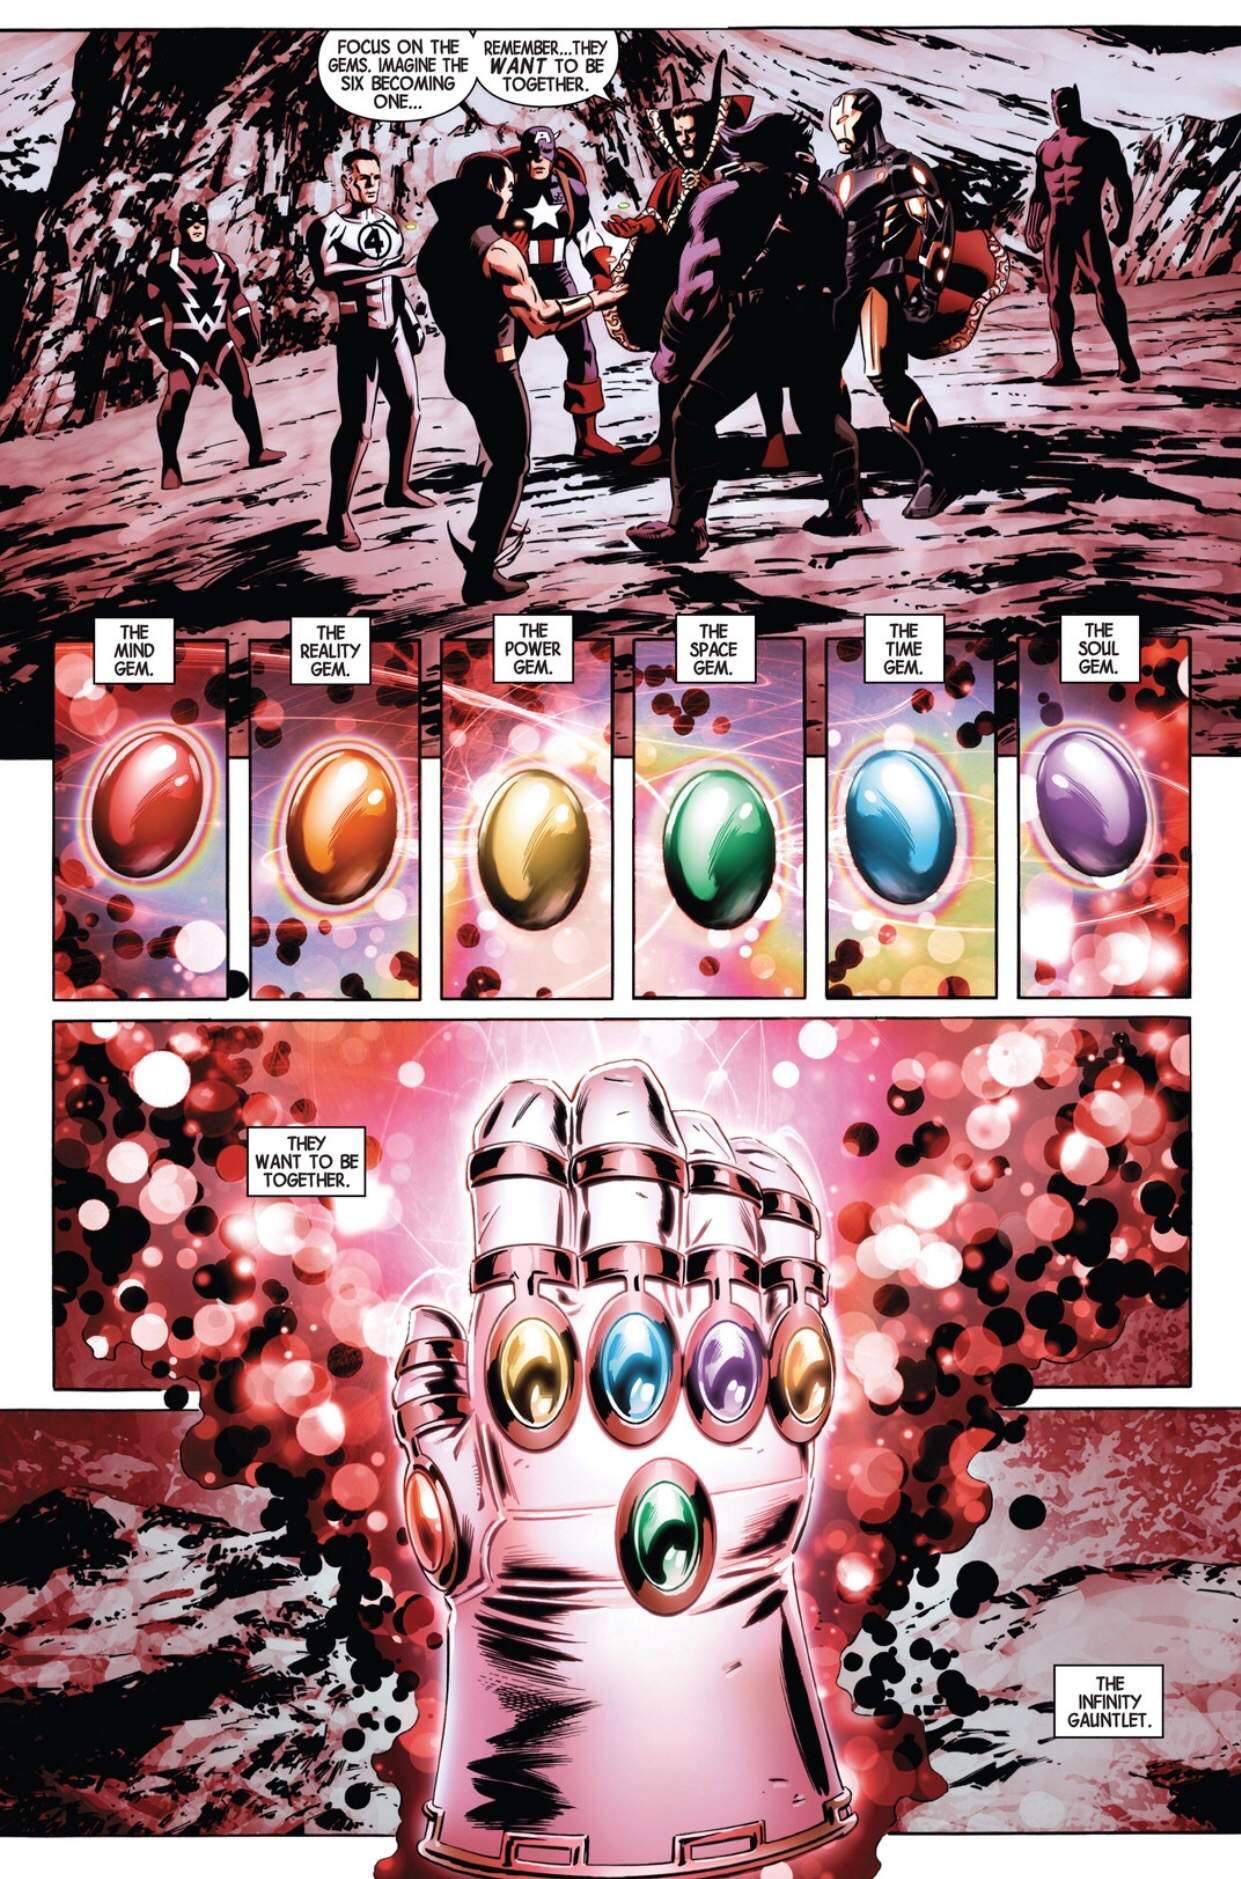 Captain America Uses The Infinity Gauntlet At The End Of The World